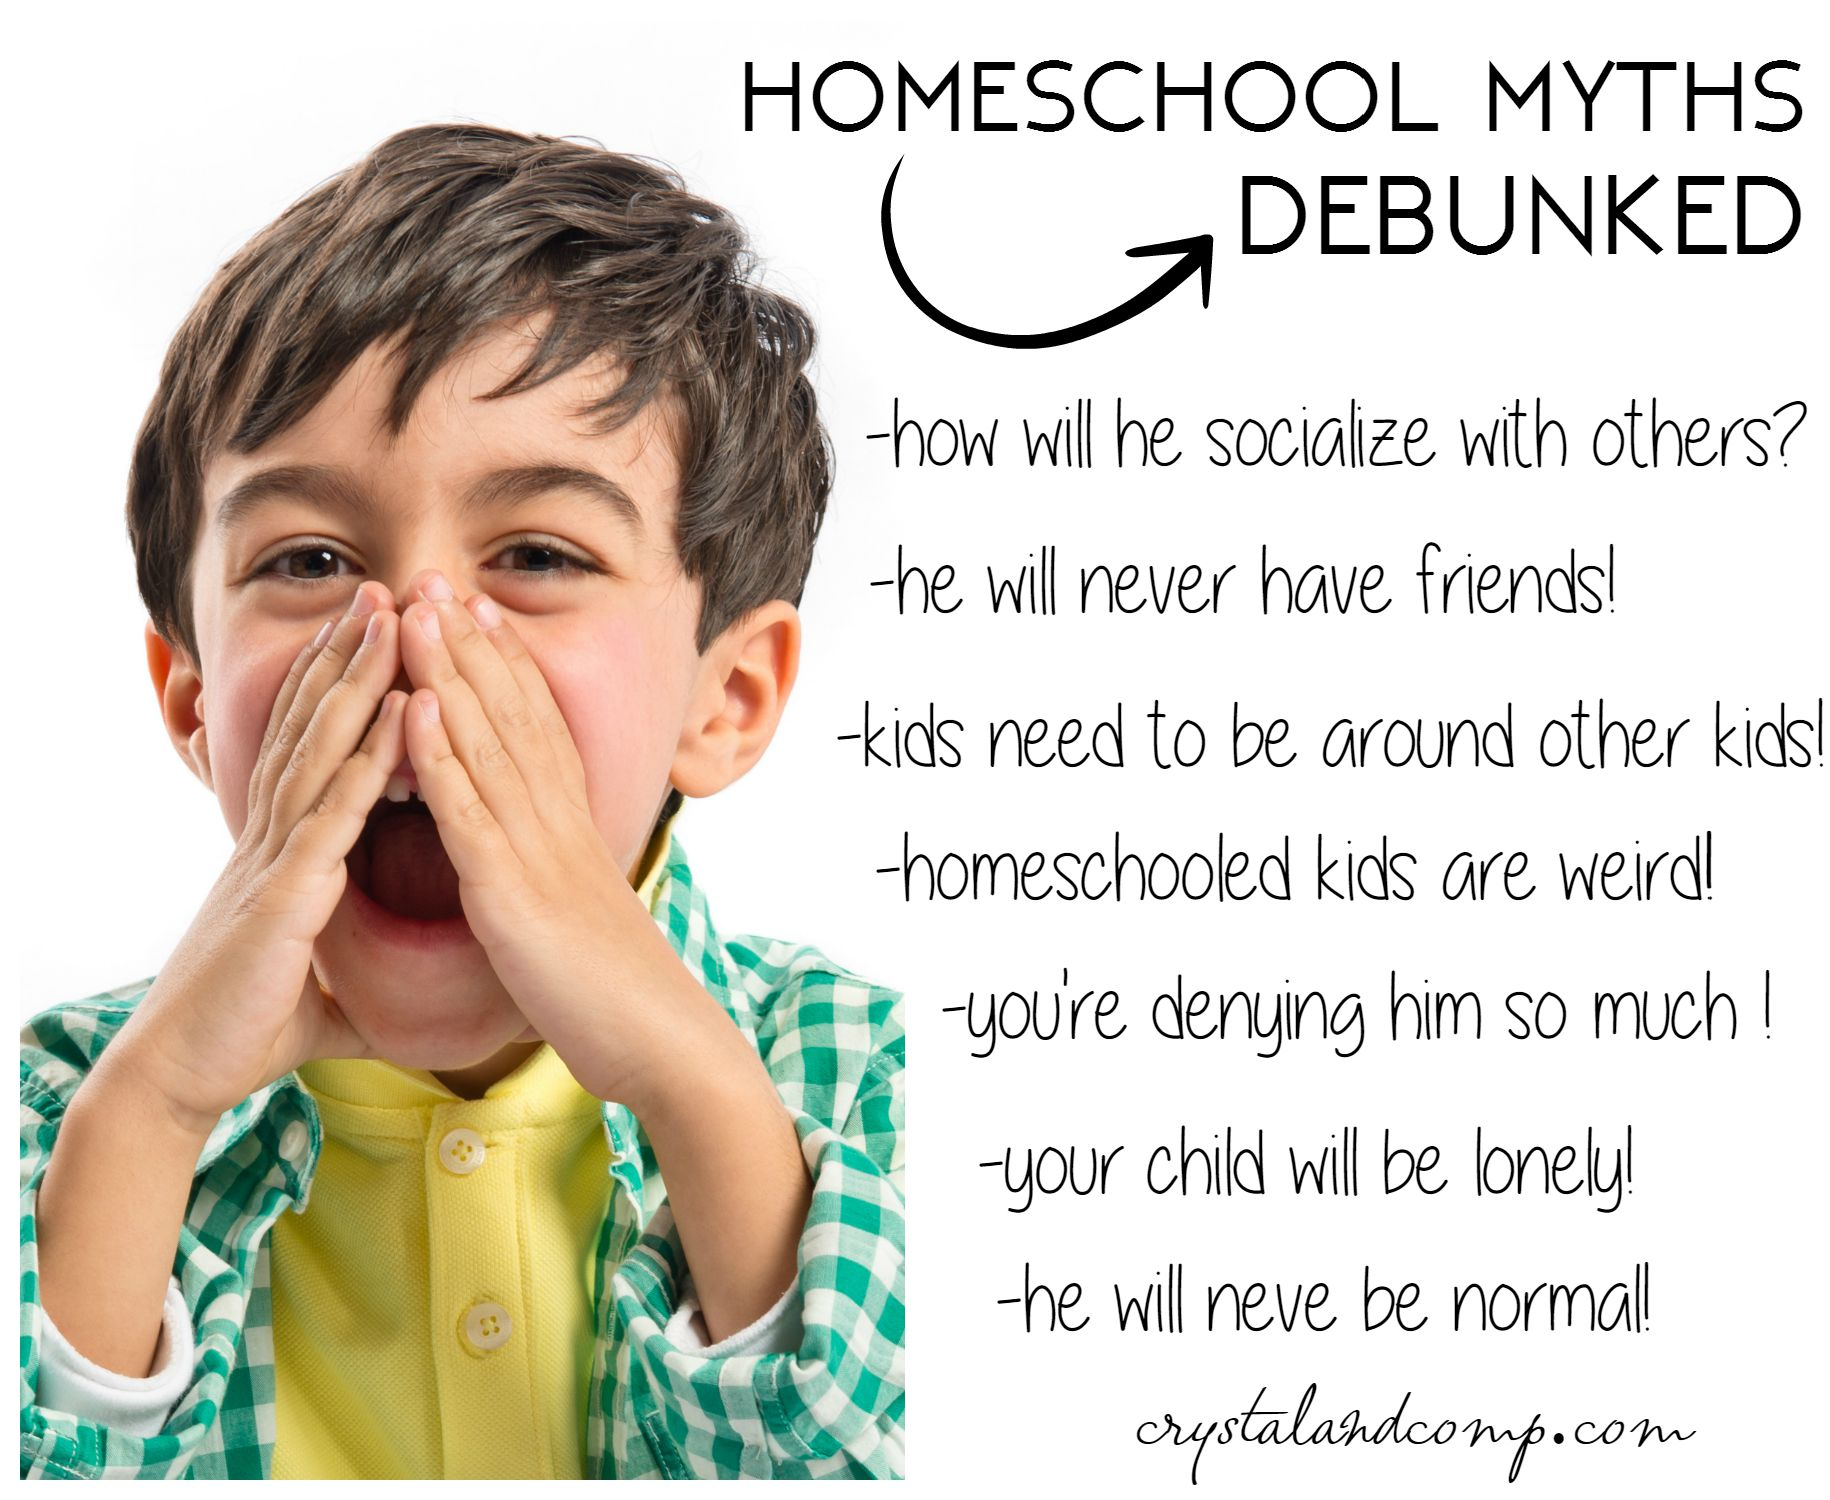 homeschool myths about socialization homeschool myths debunked